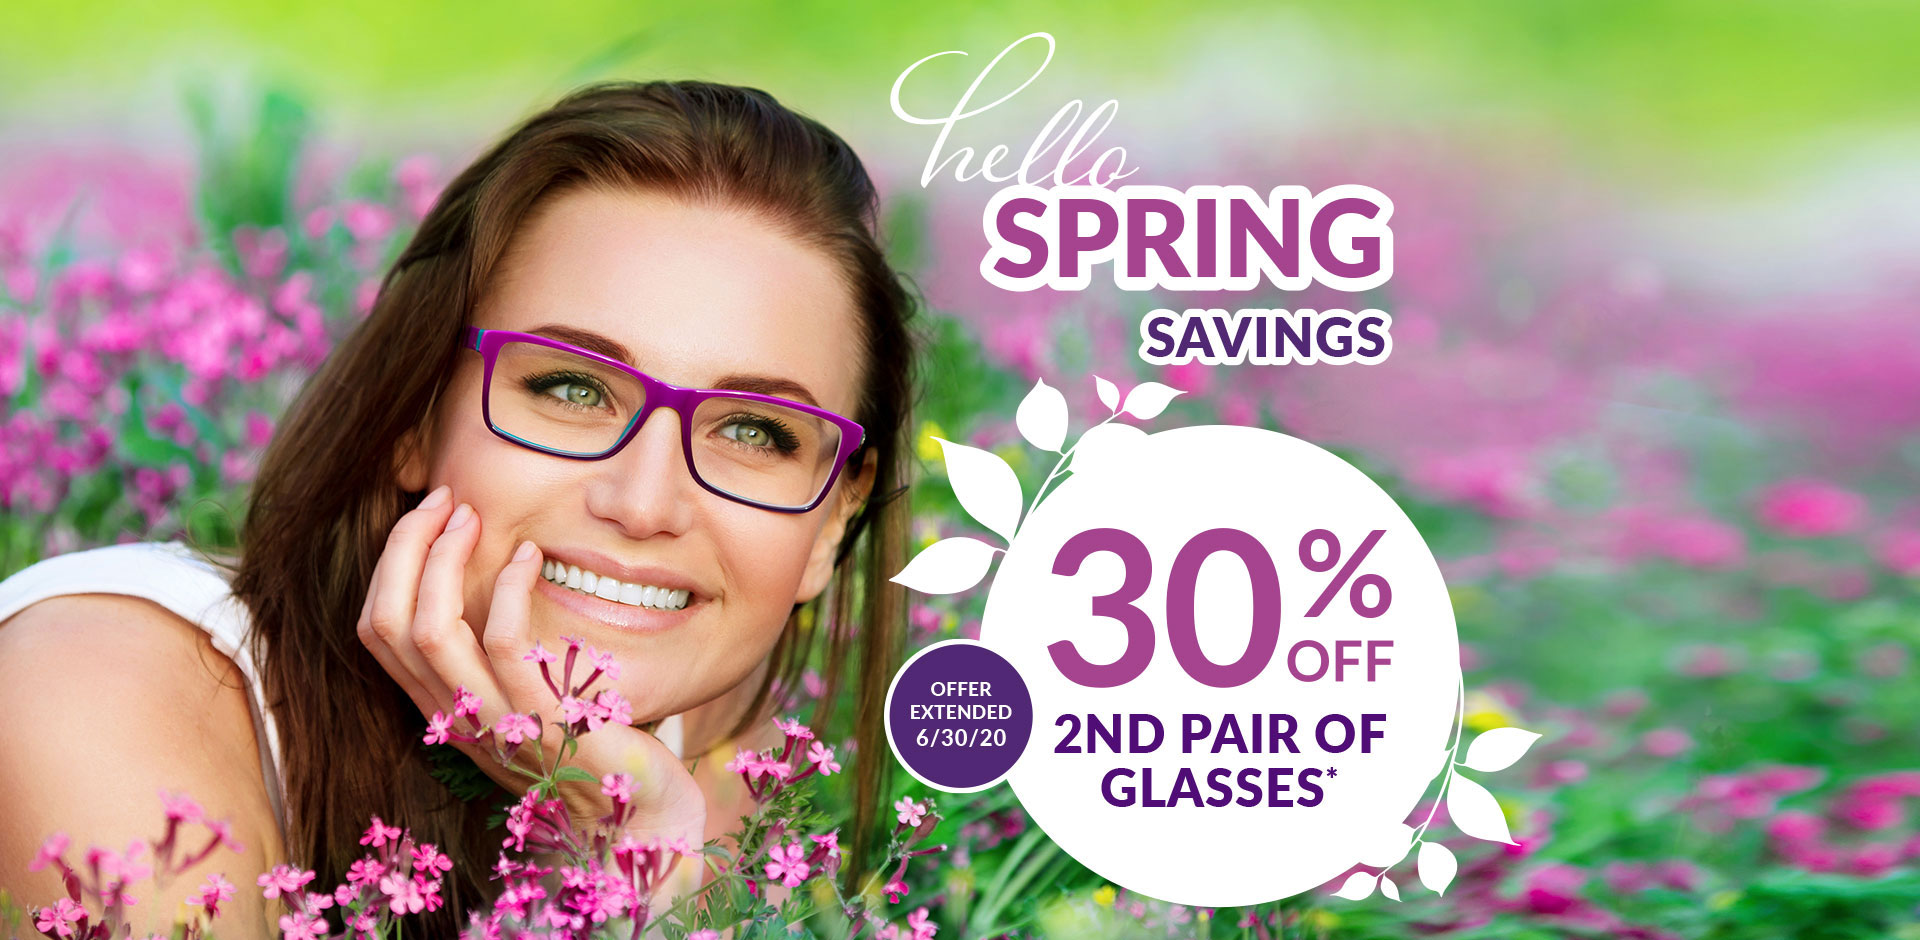 Hello Spring Savings. 30% Off 2nd Pair of Glasses. Expires 5/23/20